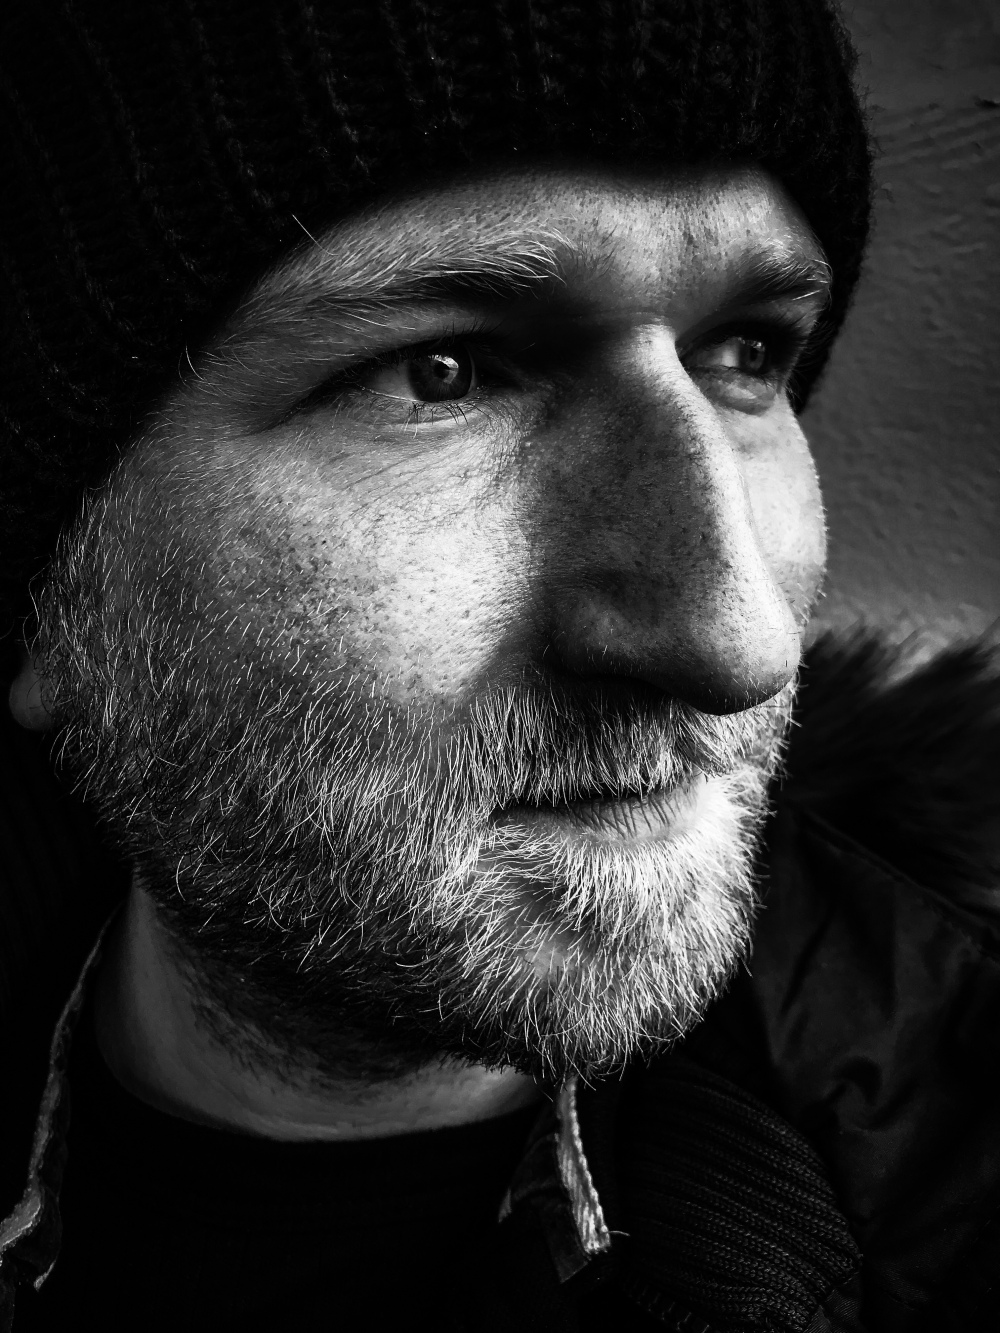 Artist headshot of ambient musician Dave Lancaster to accompany the instrumental album release Drone Alone